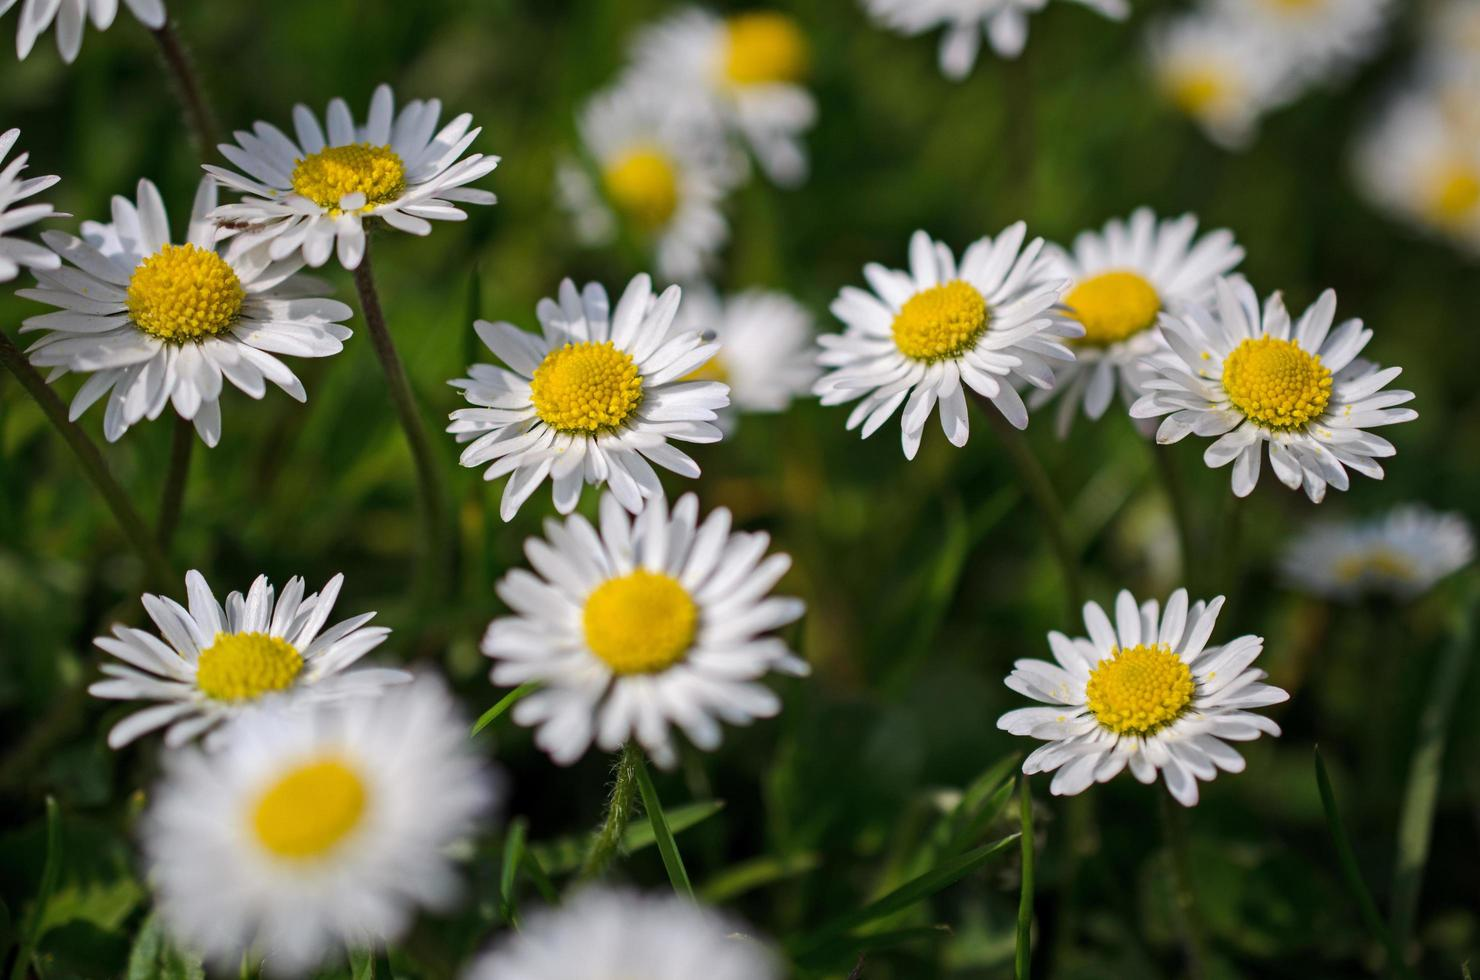 Daisies in a patch photo